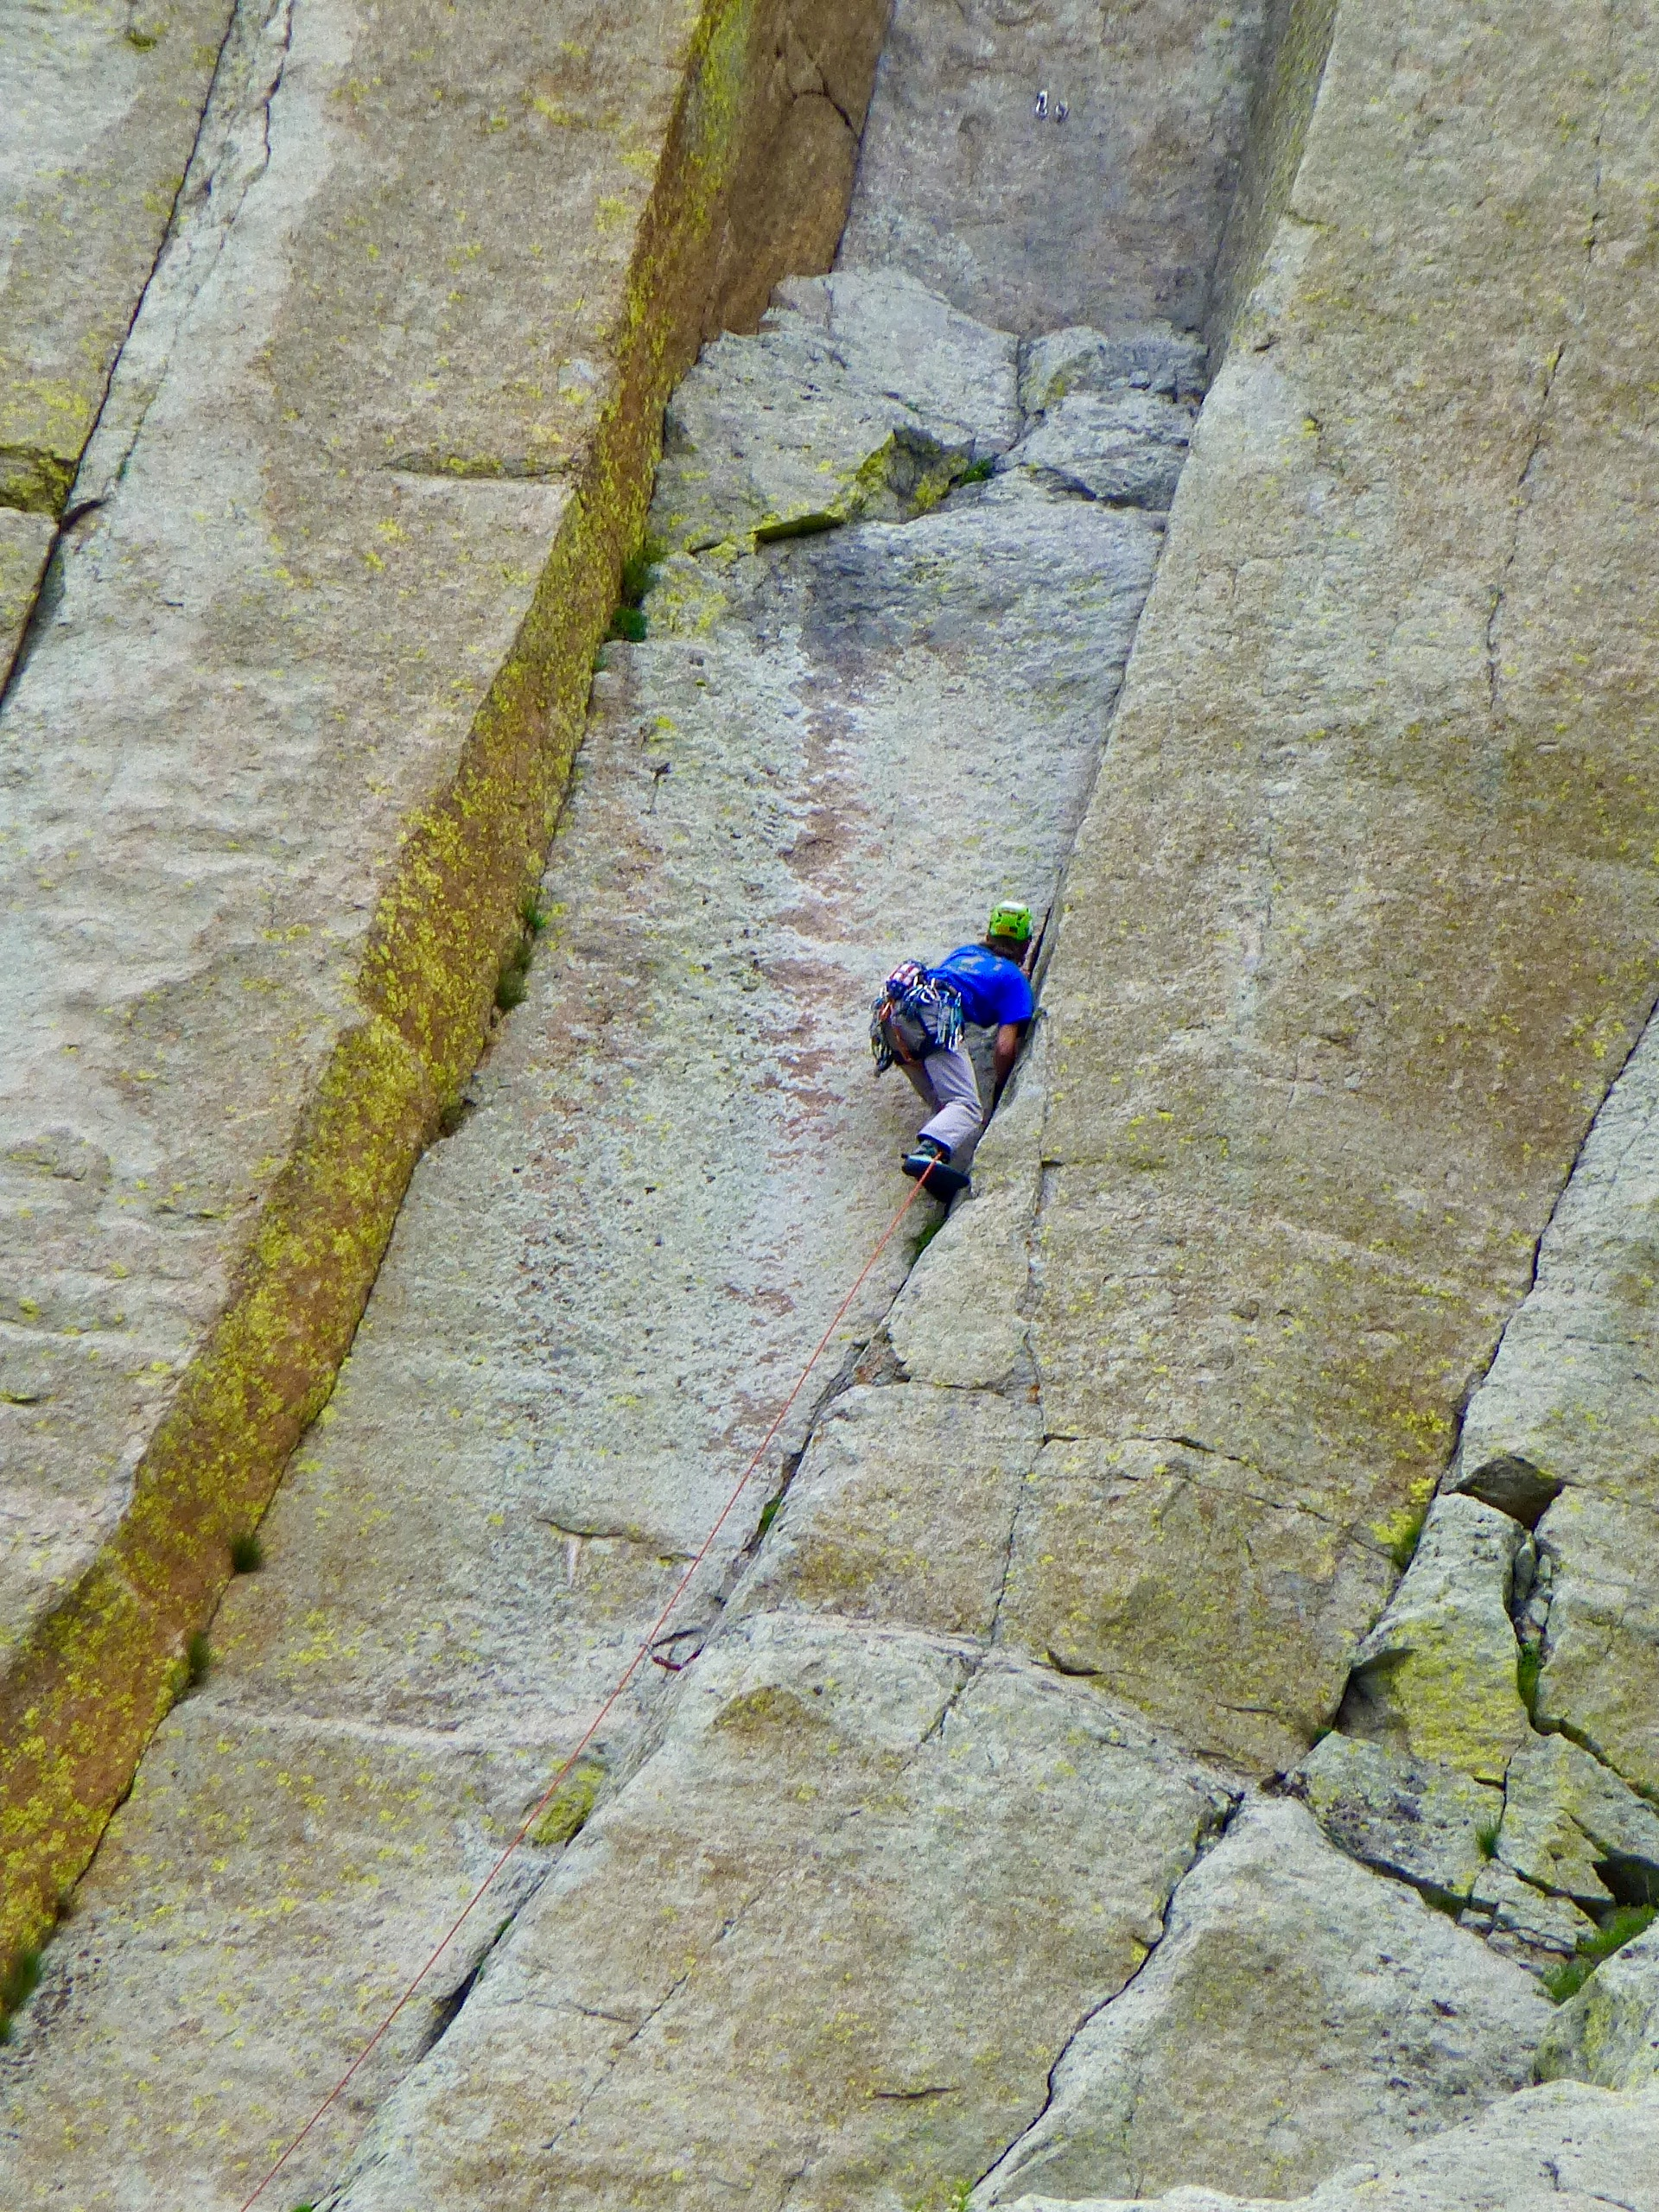 A climber two-thirds of the way up.  Most ascents take 6-10 hours for the round trip.  The record set in the 1980's for a free climb solo is 18 minutes!